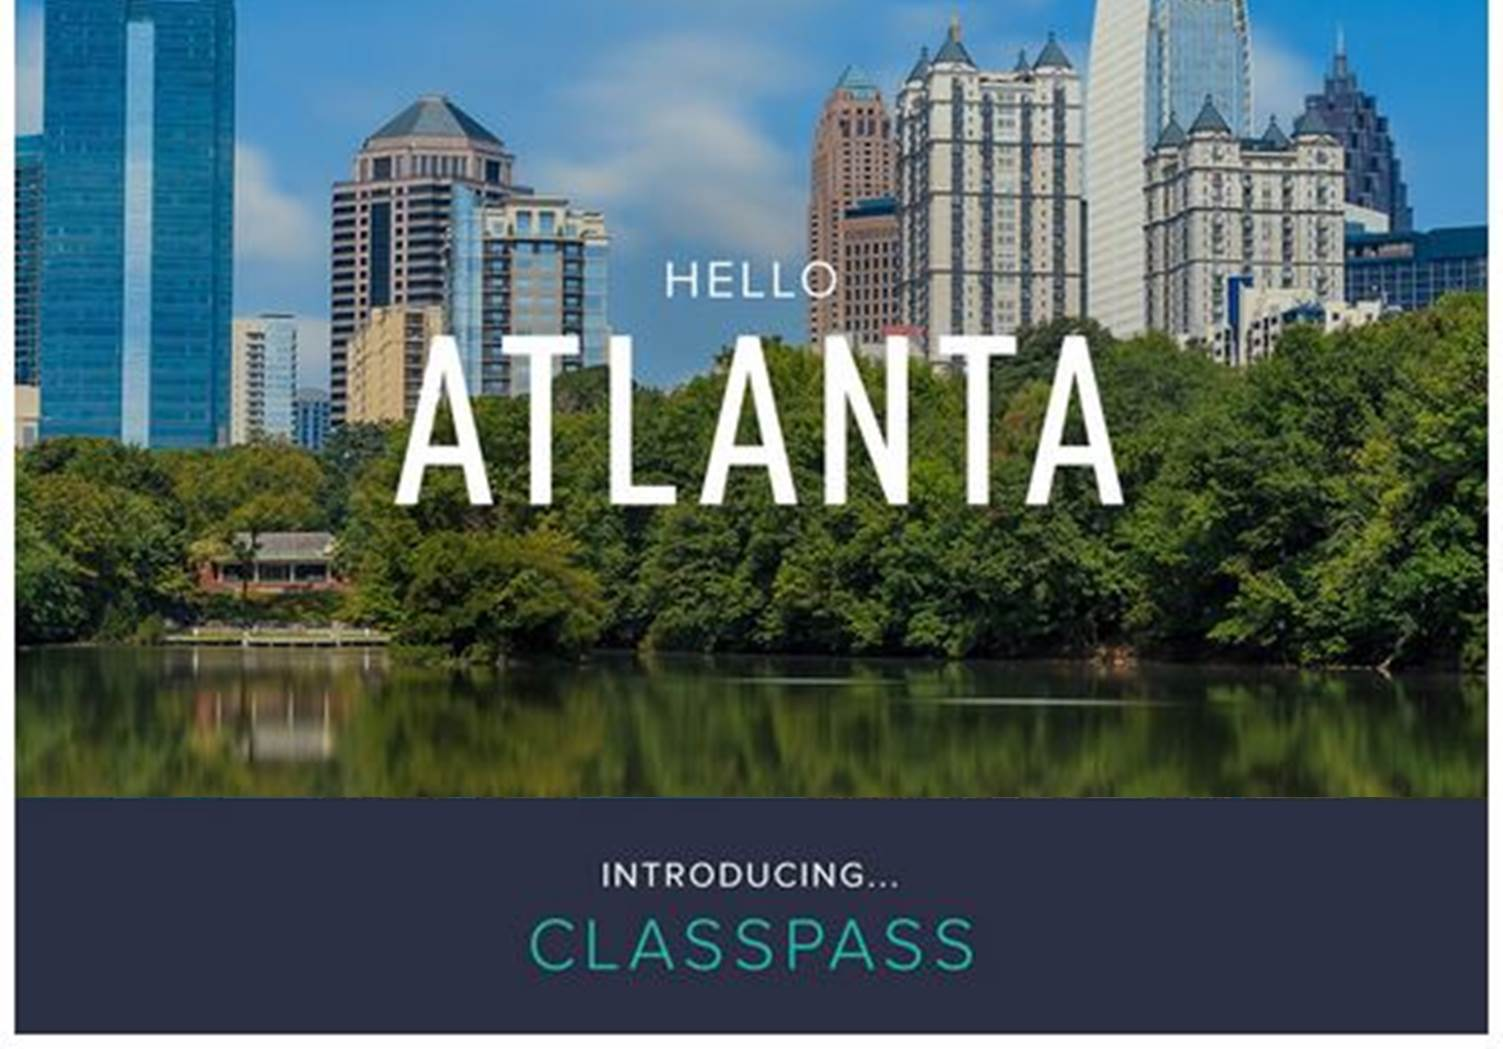 classpass-atlanta-peachfully-chic-main